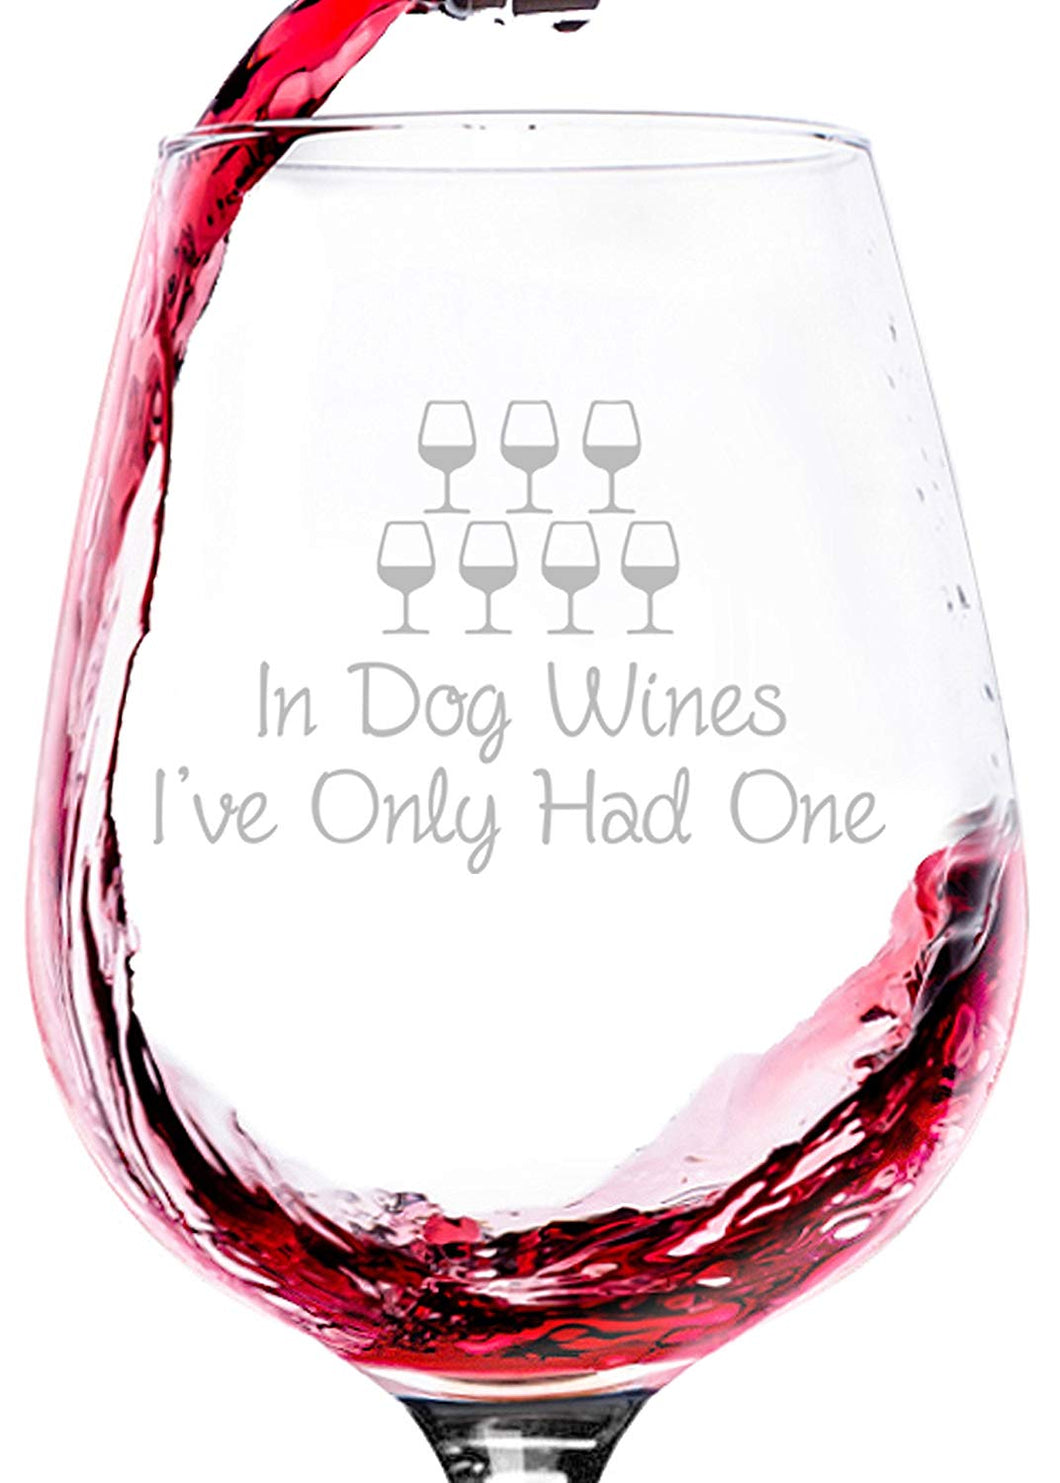 In Dog Wines Funny Wine Glass - Best Christmas Gifts for Mom, Dad - Unique Xmas Gag Gift for Dog Lover, Women, Men - Cool Bday Present from Husband, Son, Daughter - Fun Novelty Glass for Wife, Friend